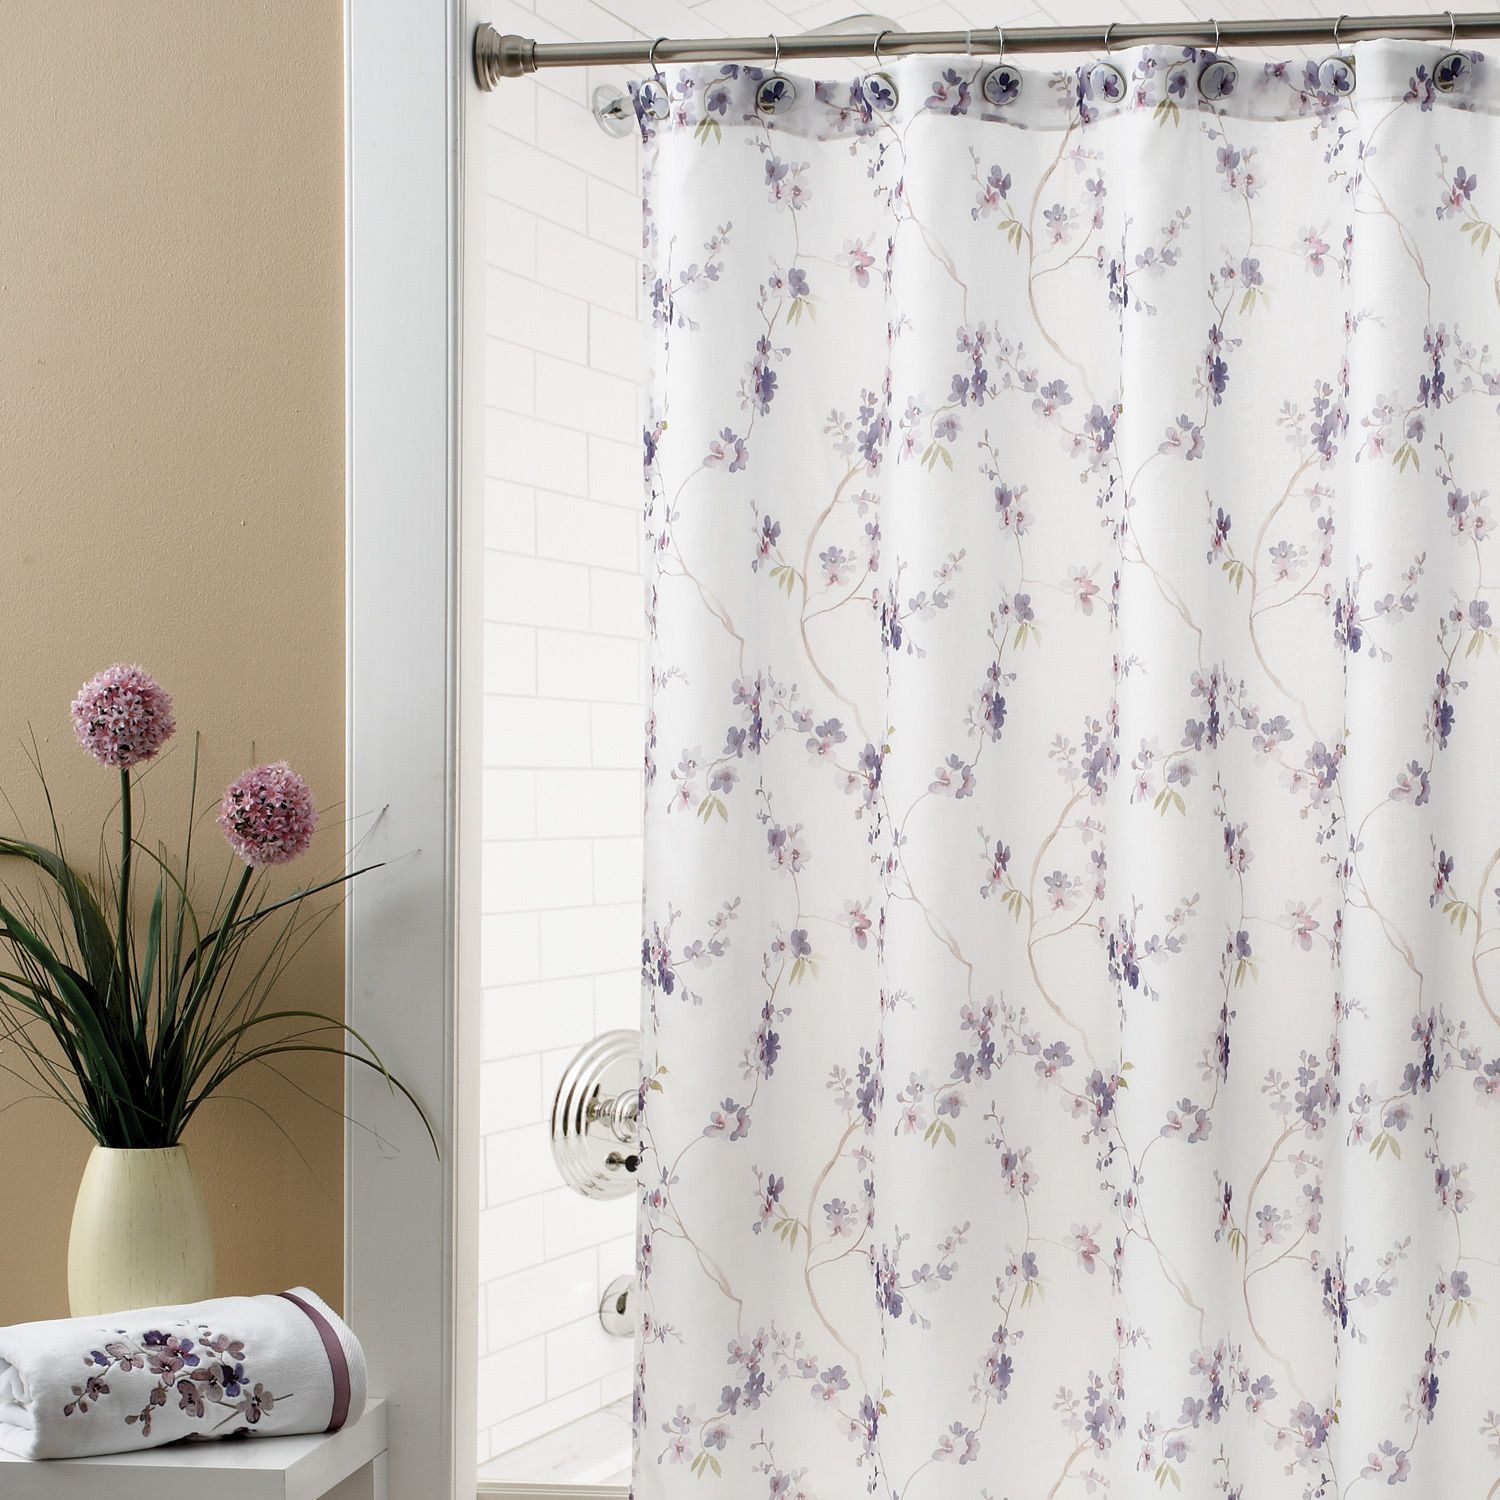 Marvellous Purple And Silver Shower Curtain Photos Best With Sizing 1500 X Mauve Gray Curtains Ideas